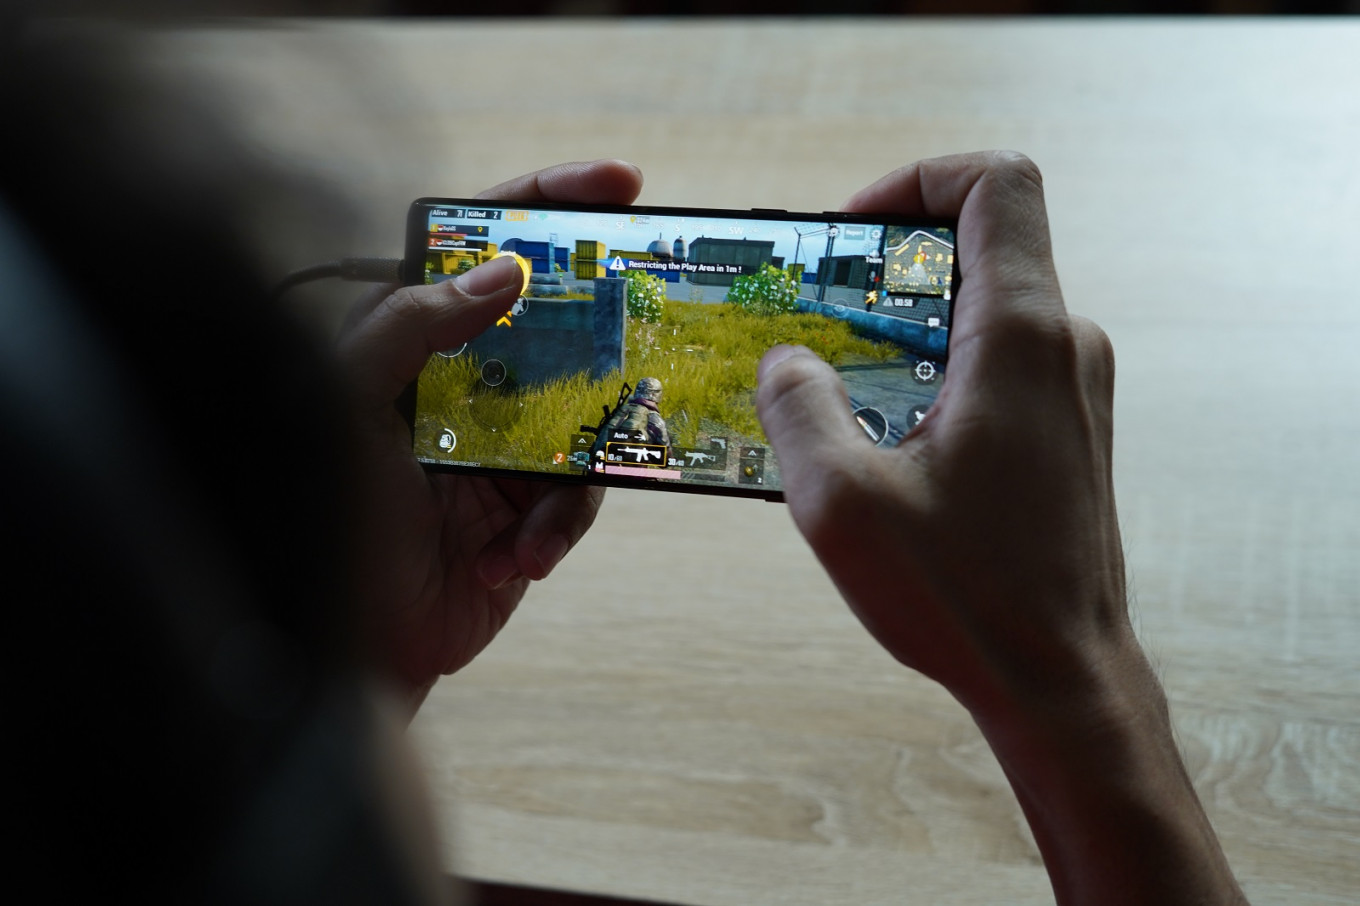 PUBG Mobile world's most popular mobile game, earns more than $146 million